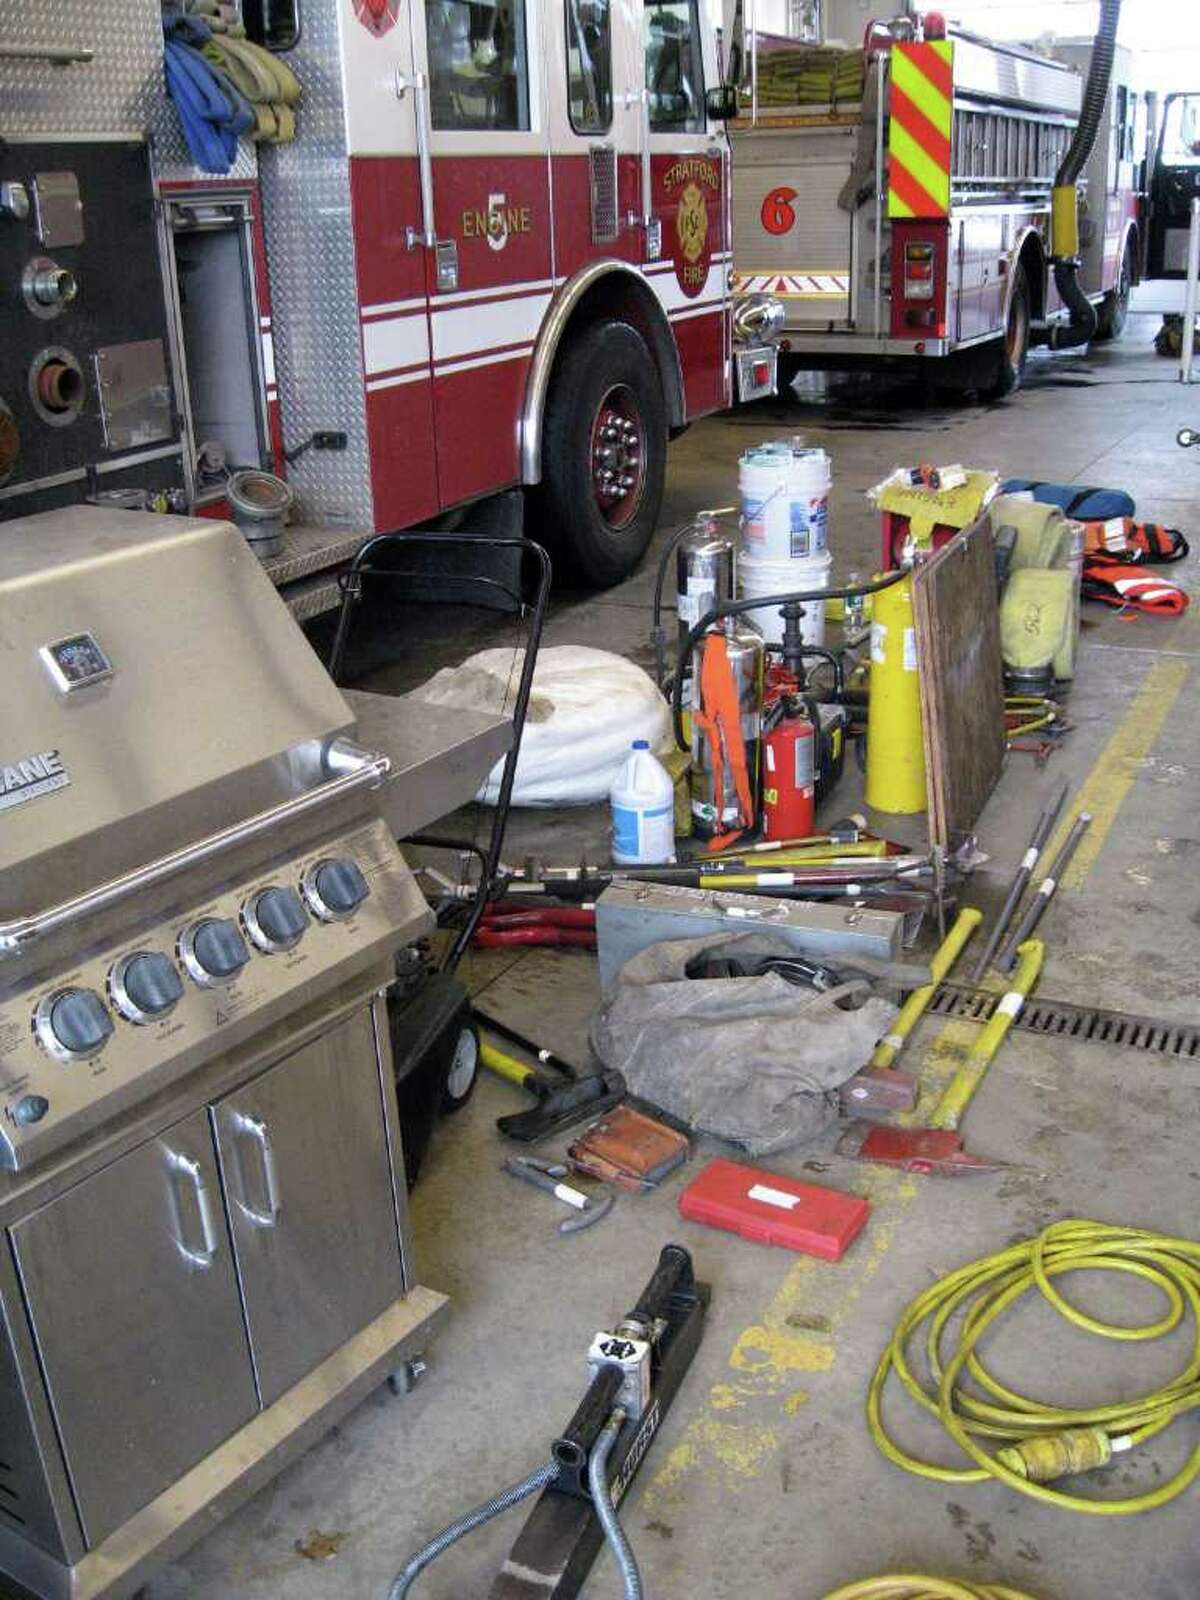 The floor of Stratford Fire Headquarters was covered by the fire-fighting and rescue gear that had been stowed in the two smashed-up fire engines. Both Engine 1, and Engine 5, at left, suffered heavy damage when they were hit by tractor-trailer trucks on I-95 Friday night. Six firefighters also received minor injuries.